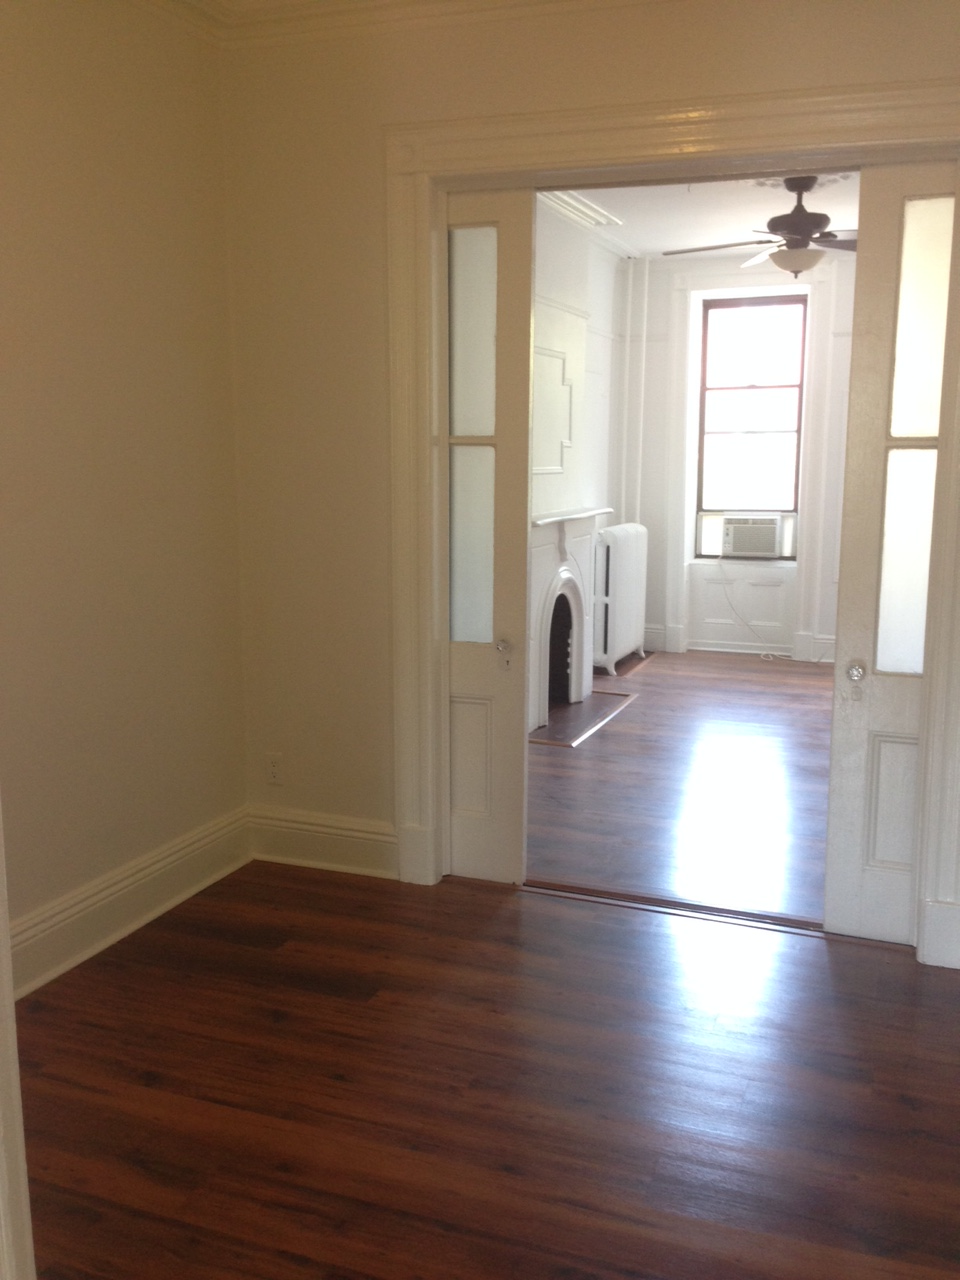 View of our office from living room doorway. French doors lead into master bedroom.